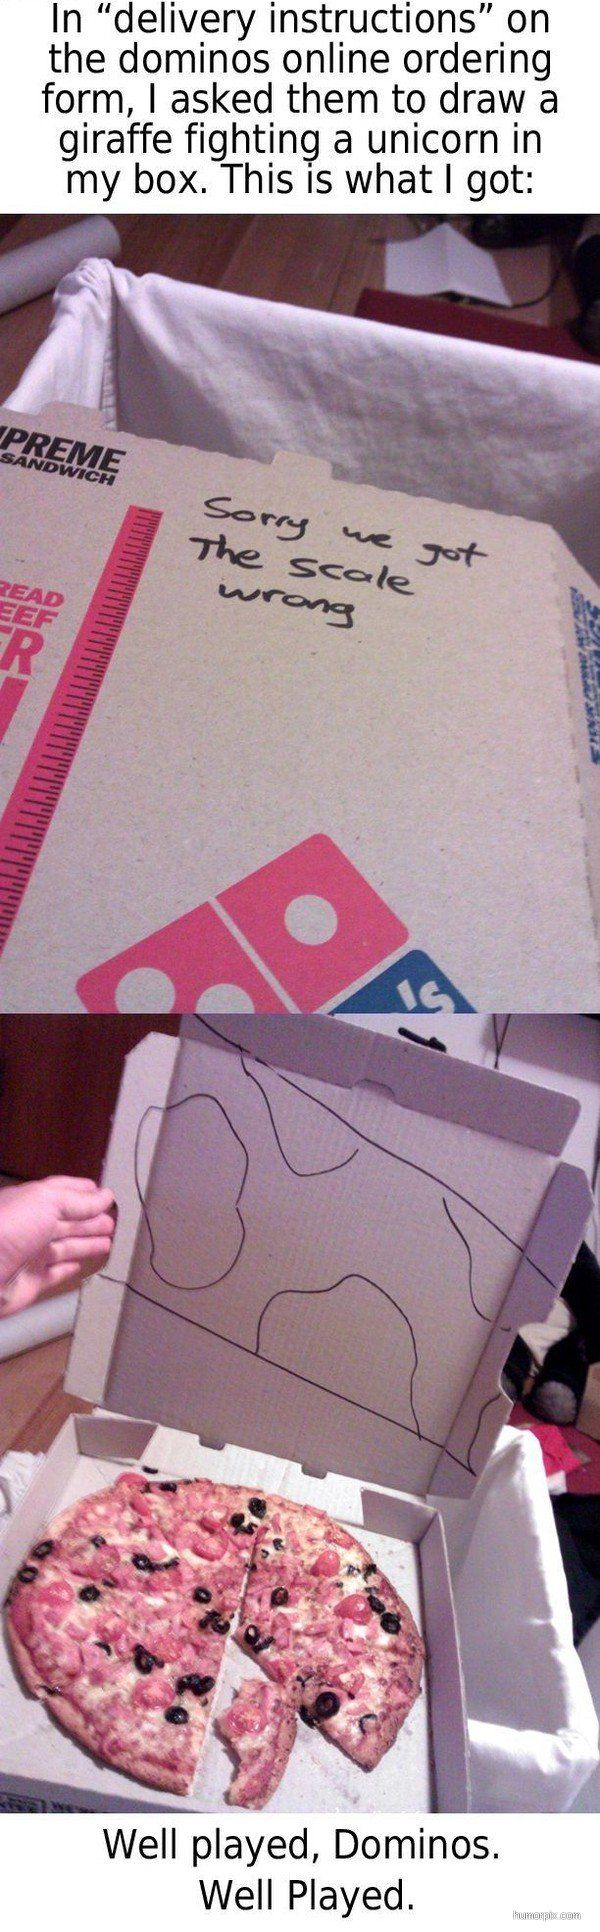 As if I need more reasons to love Dominos